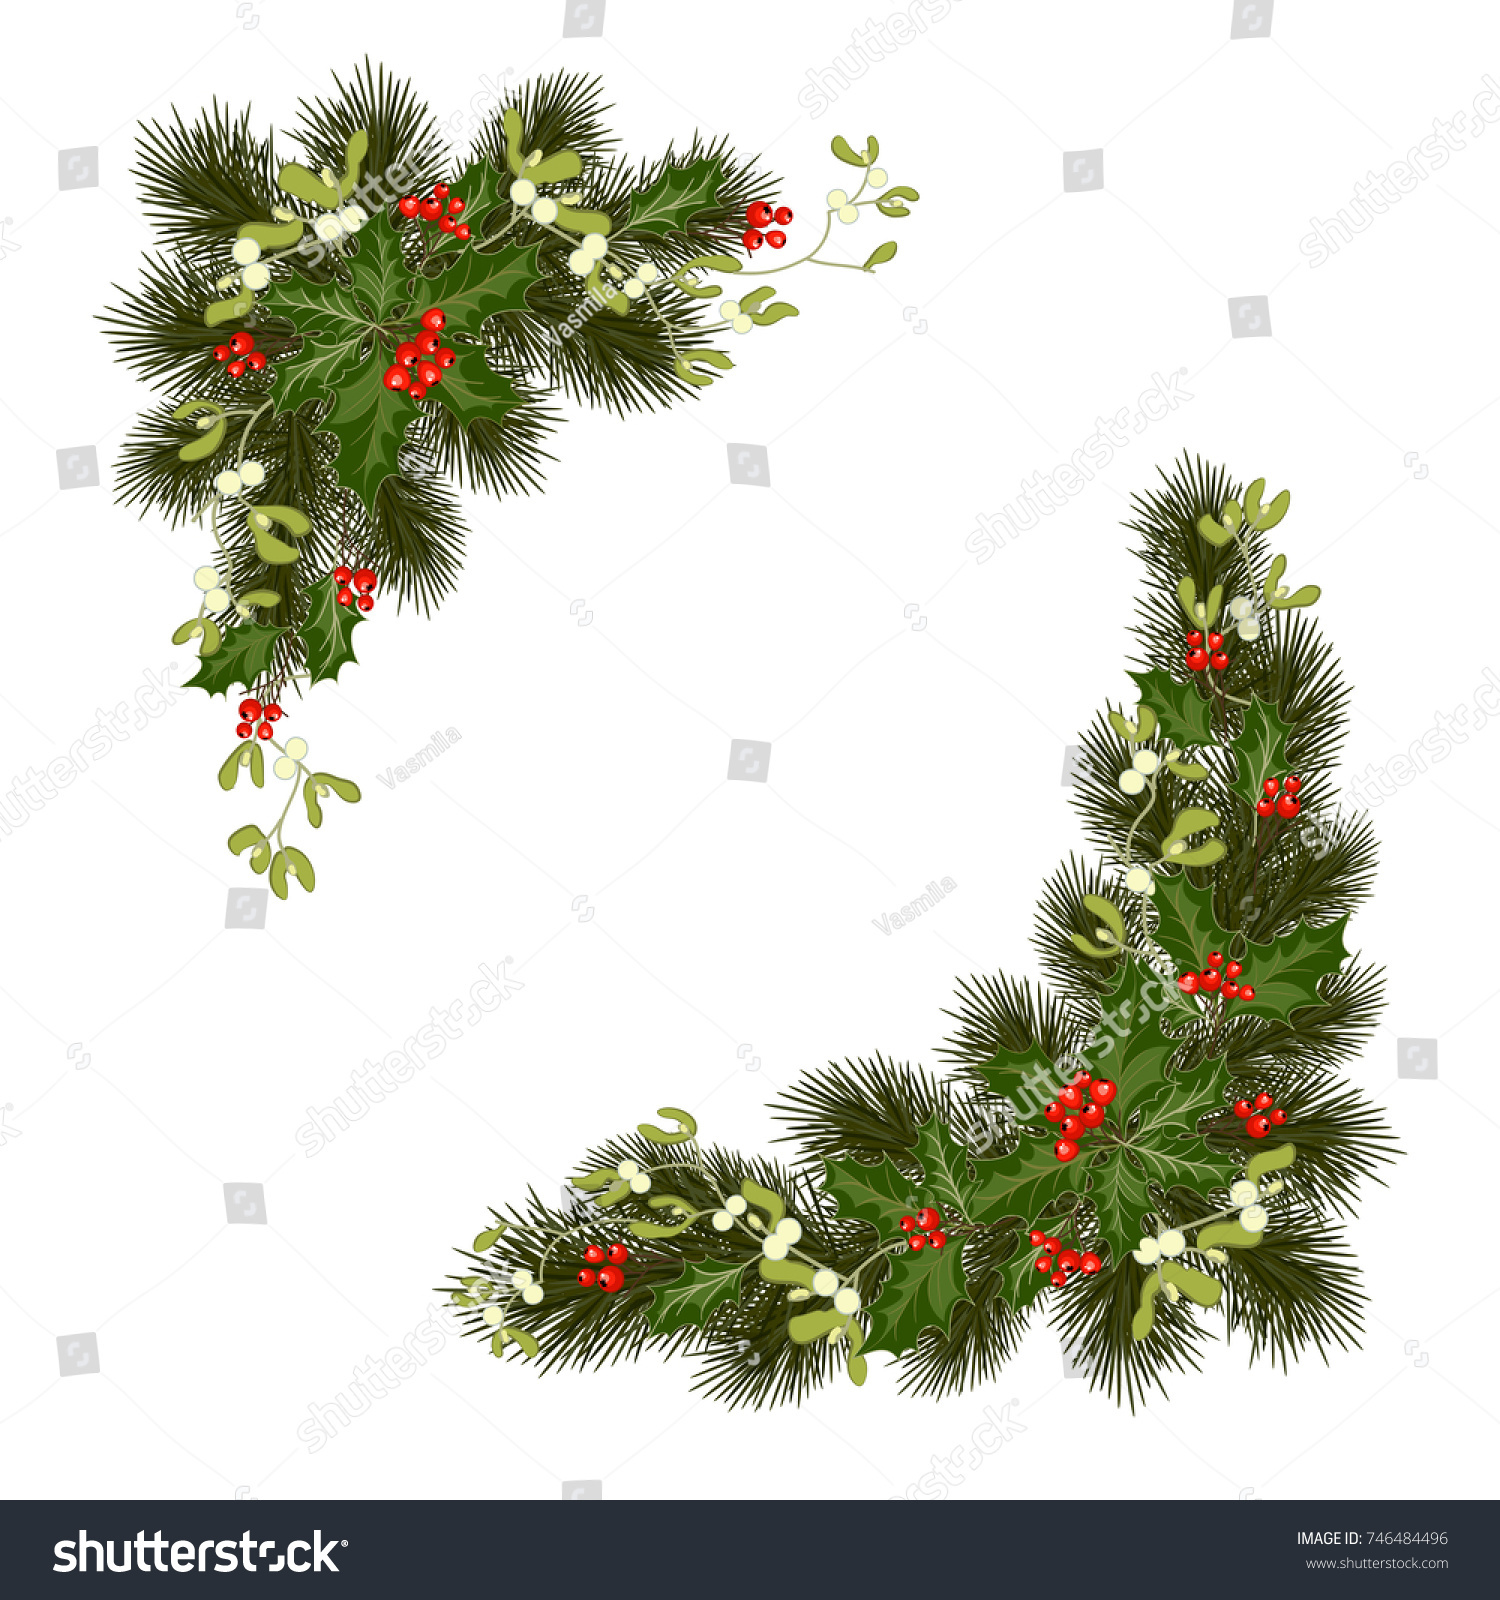 Christmas Tree Decoration Elements: Christmas Decorations Fir Tree Holly Berries Stock Vector